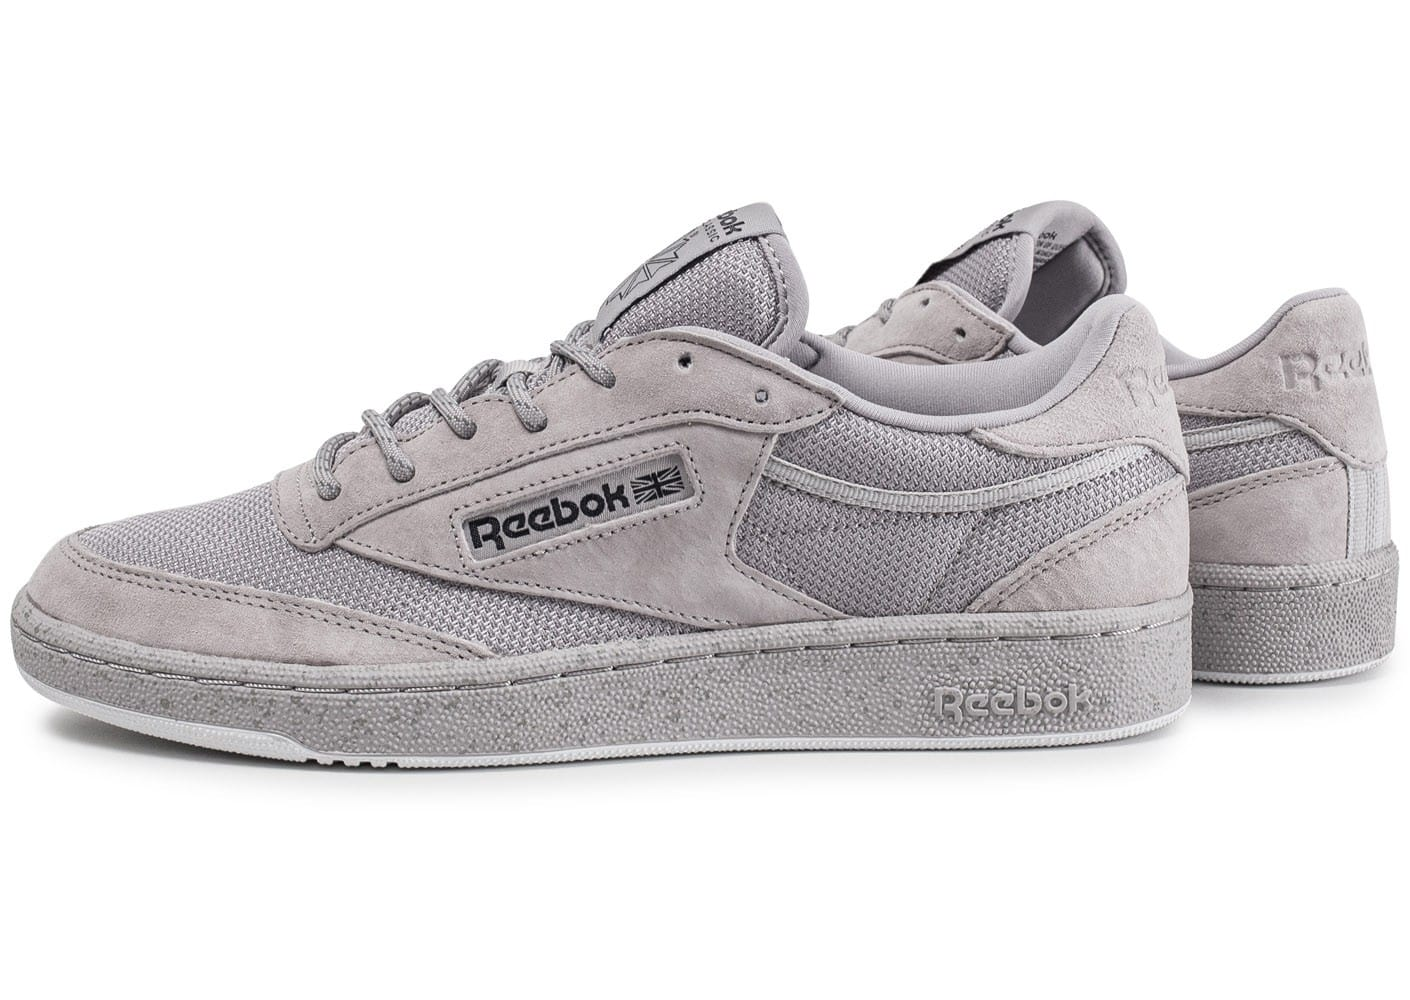 Chaussures Reebok grises homme